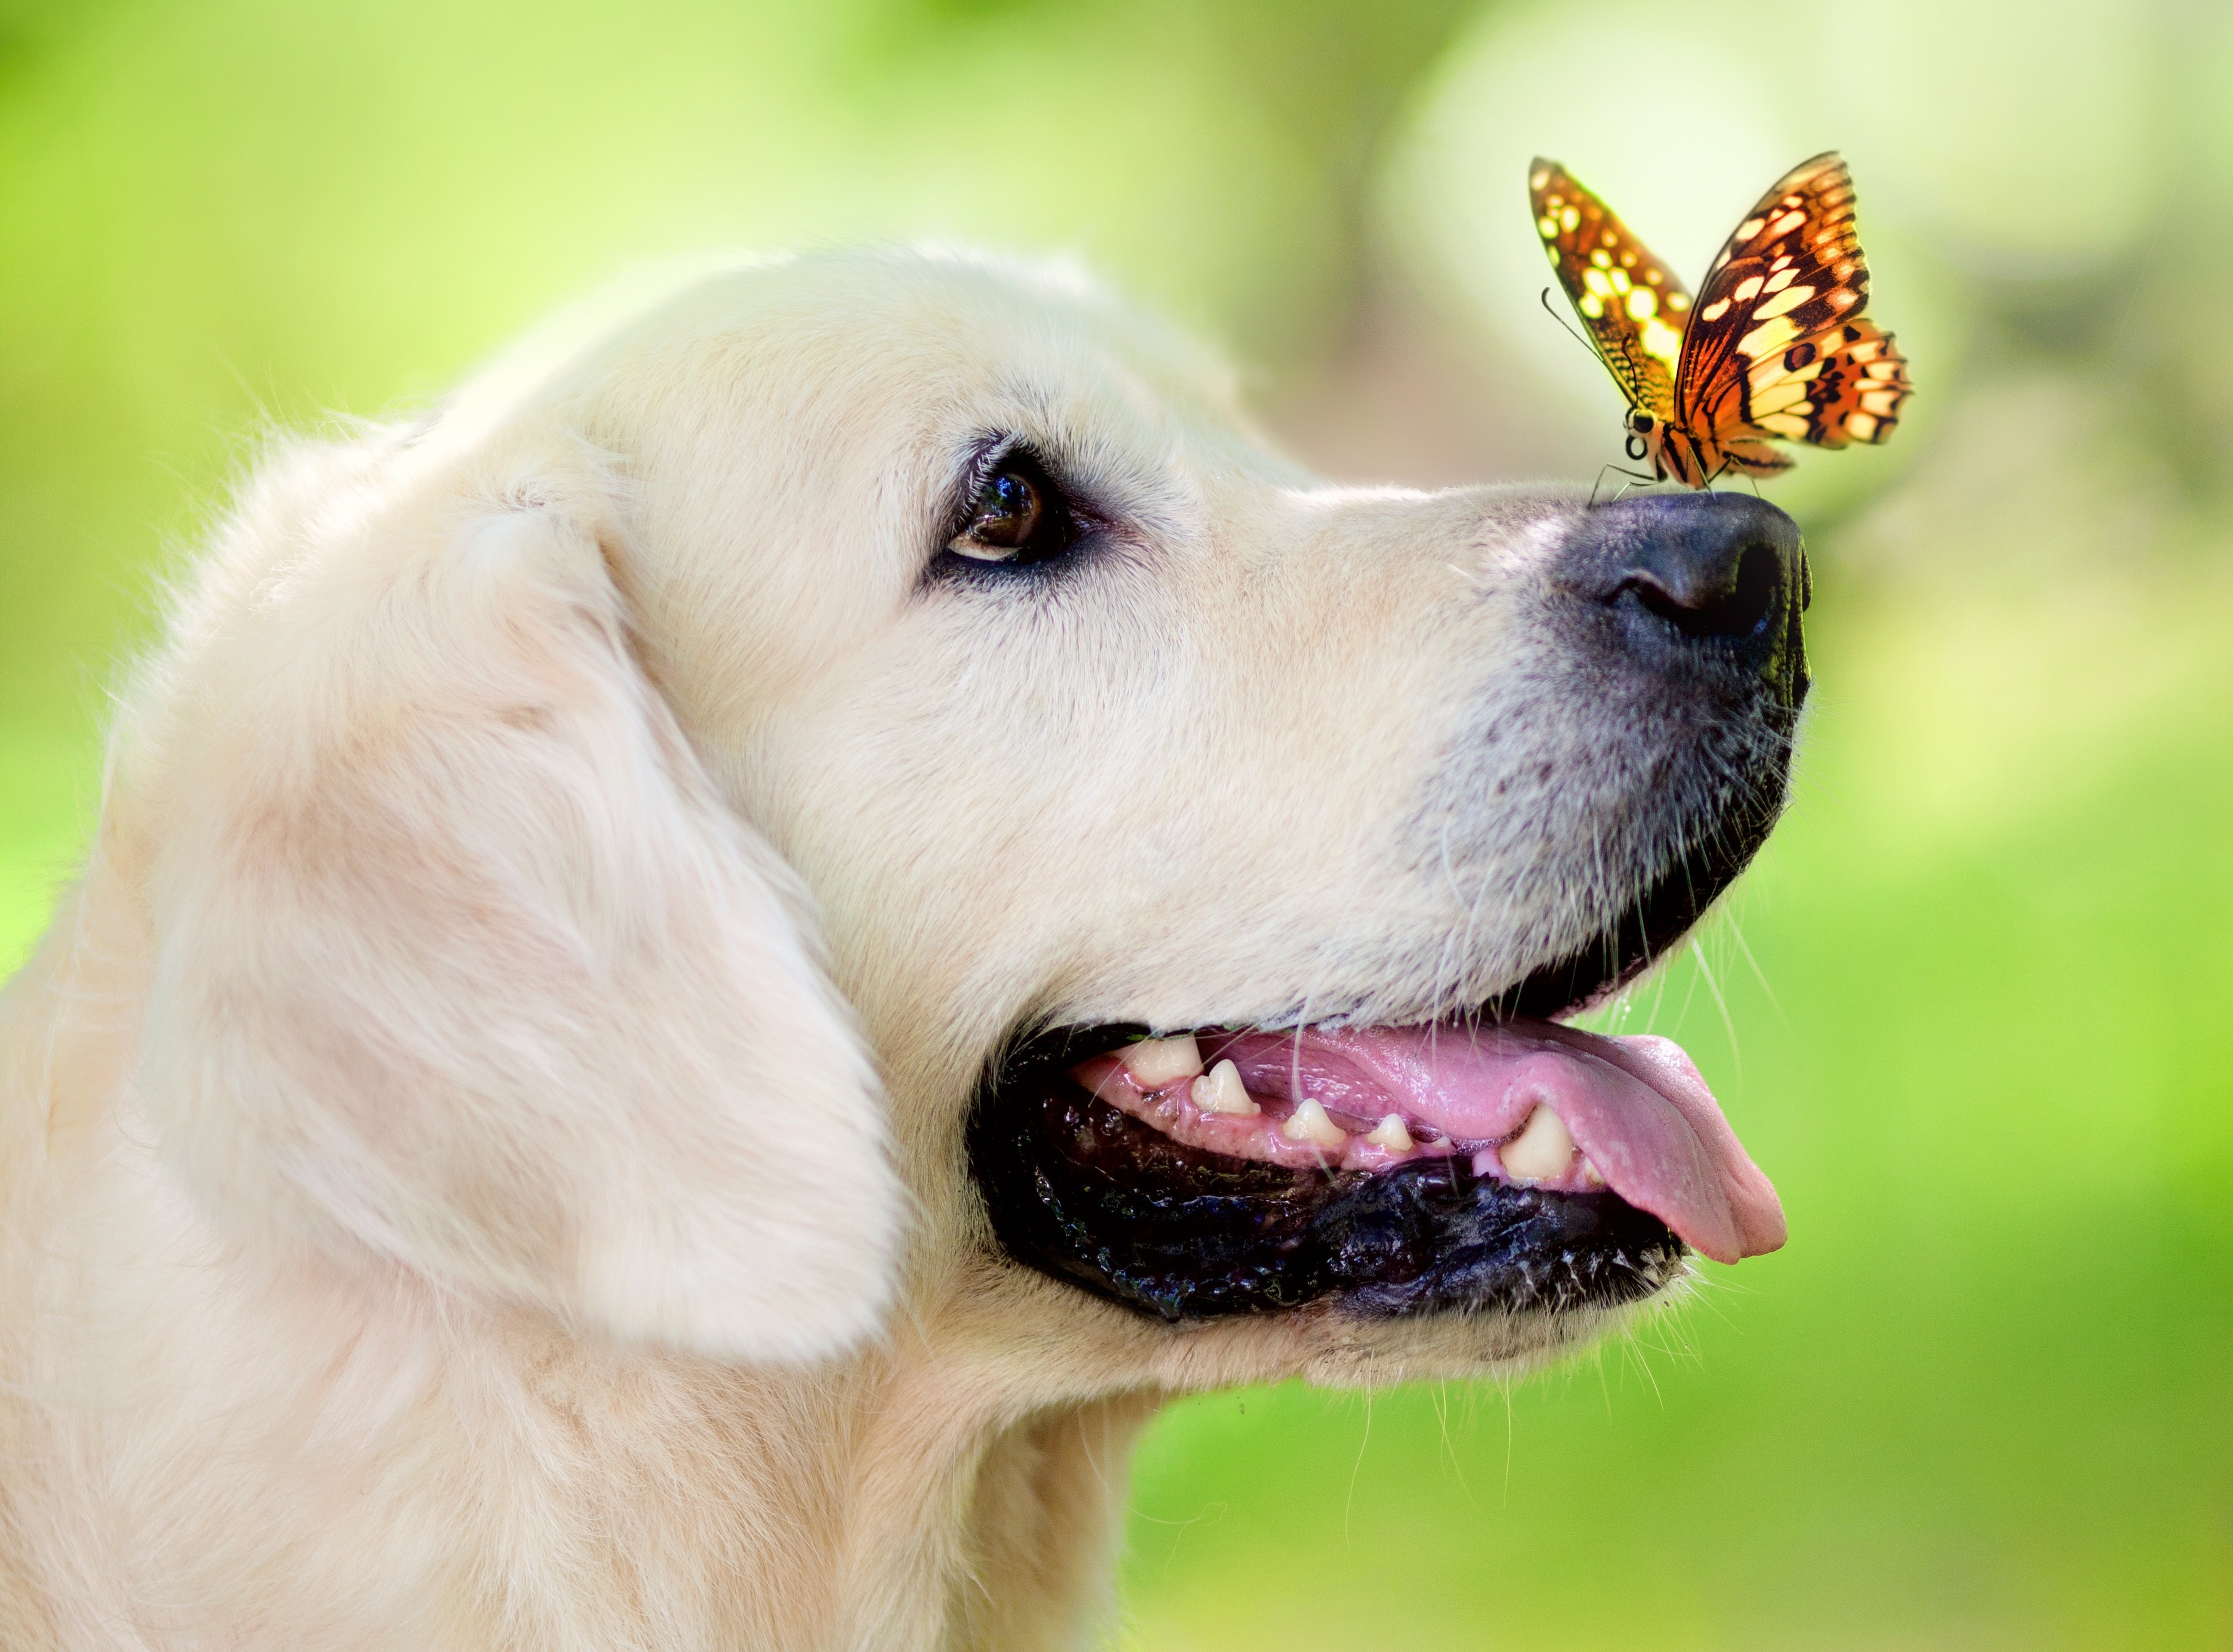 79711 download wallpaper Animals, Dog, Muzzle, Butterfly, Protruding Tongue, Tongue Stuck Out, Spring, Summer screensavers and pictures for free